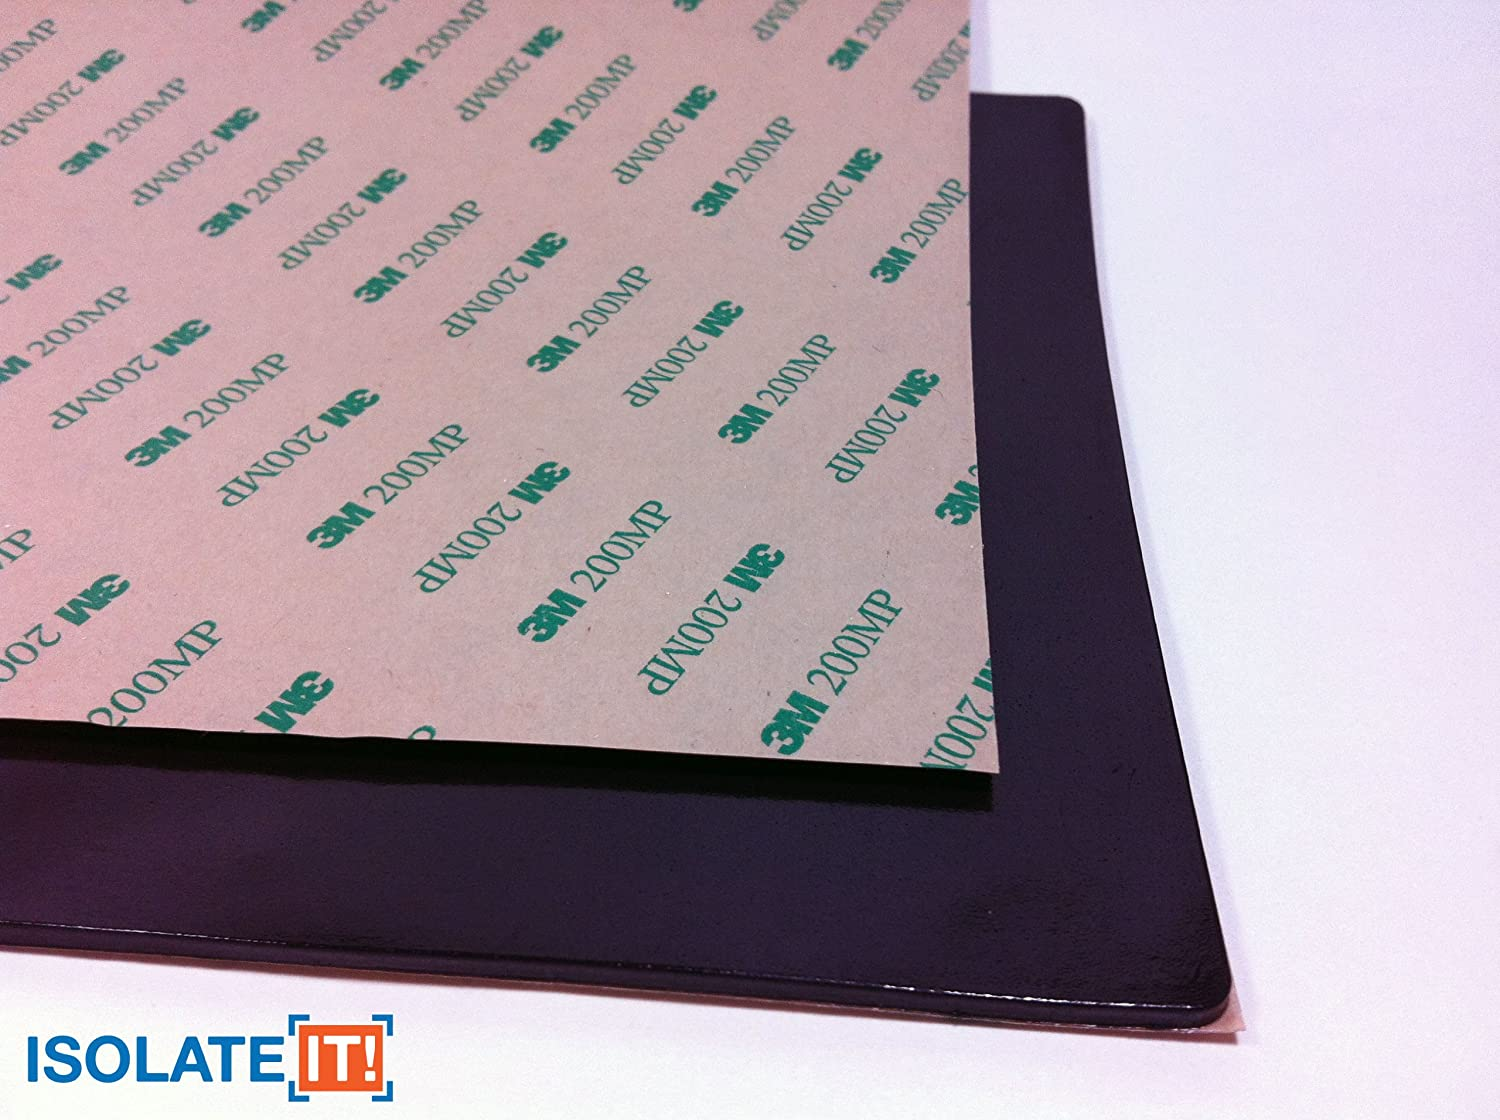 0.188 x 6 x 12in 0206119-60 Sorbothane Acoustic /& Vibration Damping Film 60 Duro with 3M Adhesive Backing Isolate It!